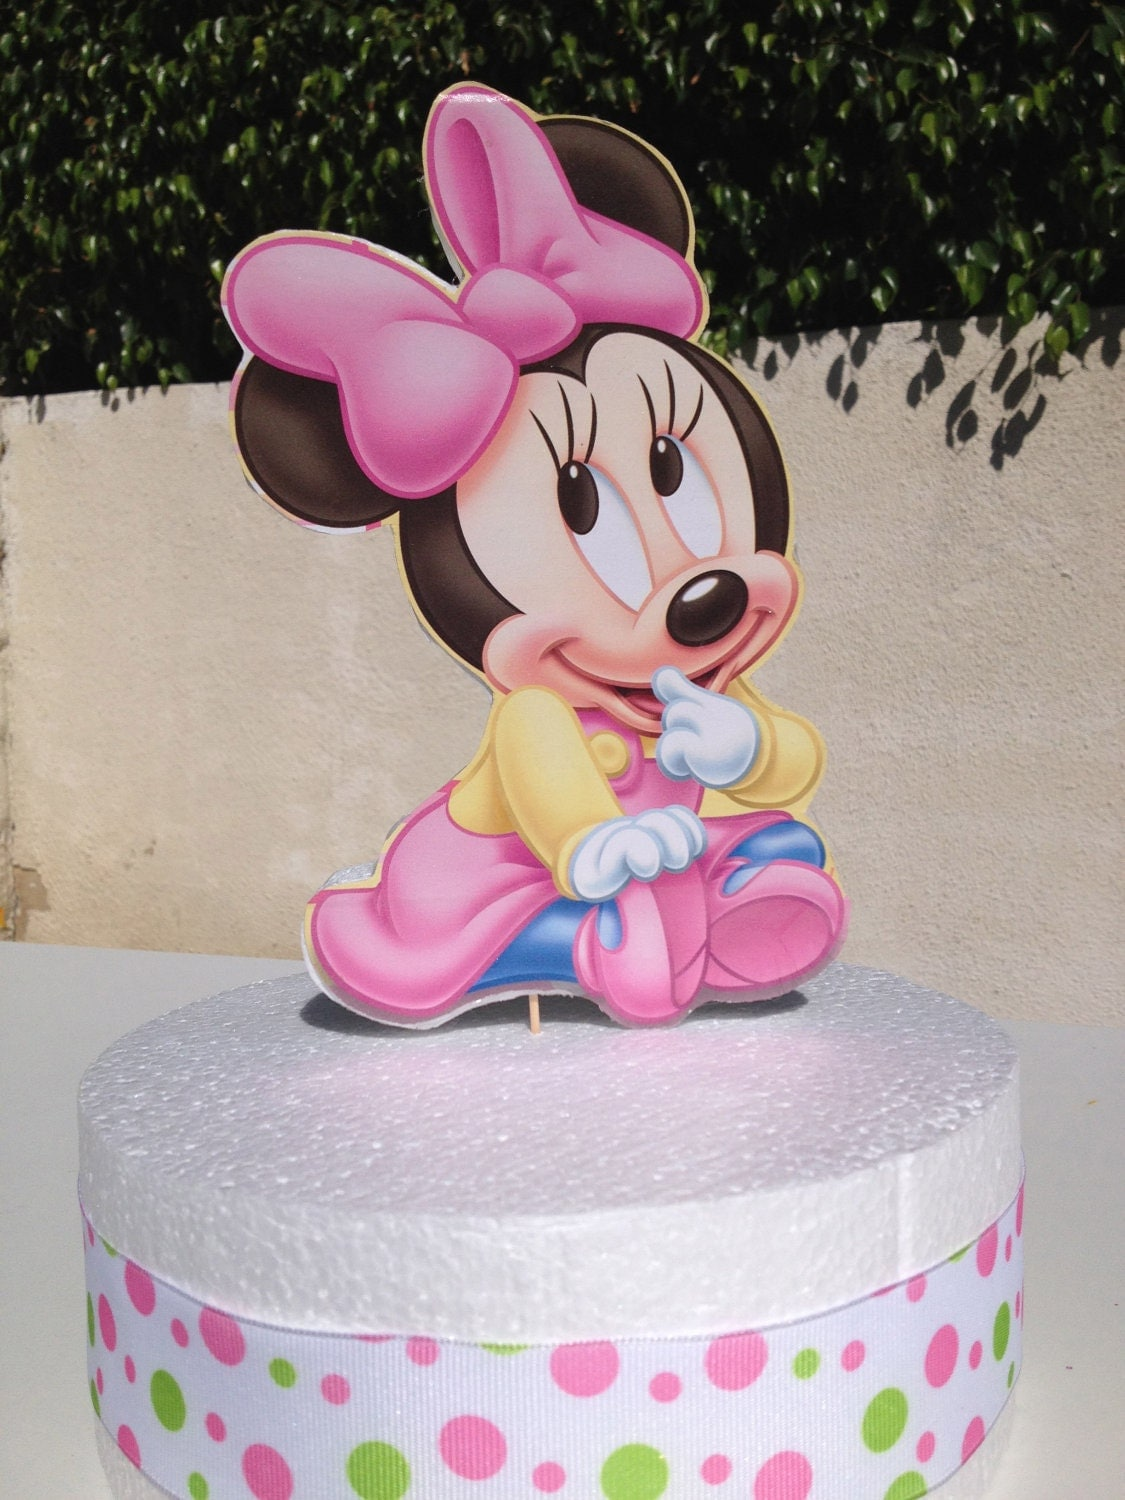 Baby minnie mouse cake topper for baby shower or 1st birthday for Baby minnie decoration